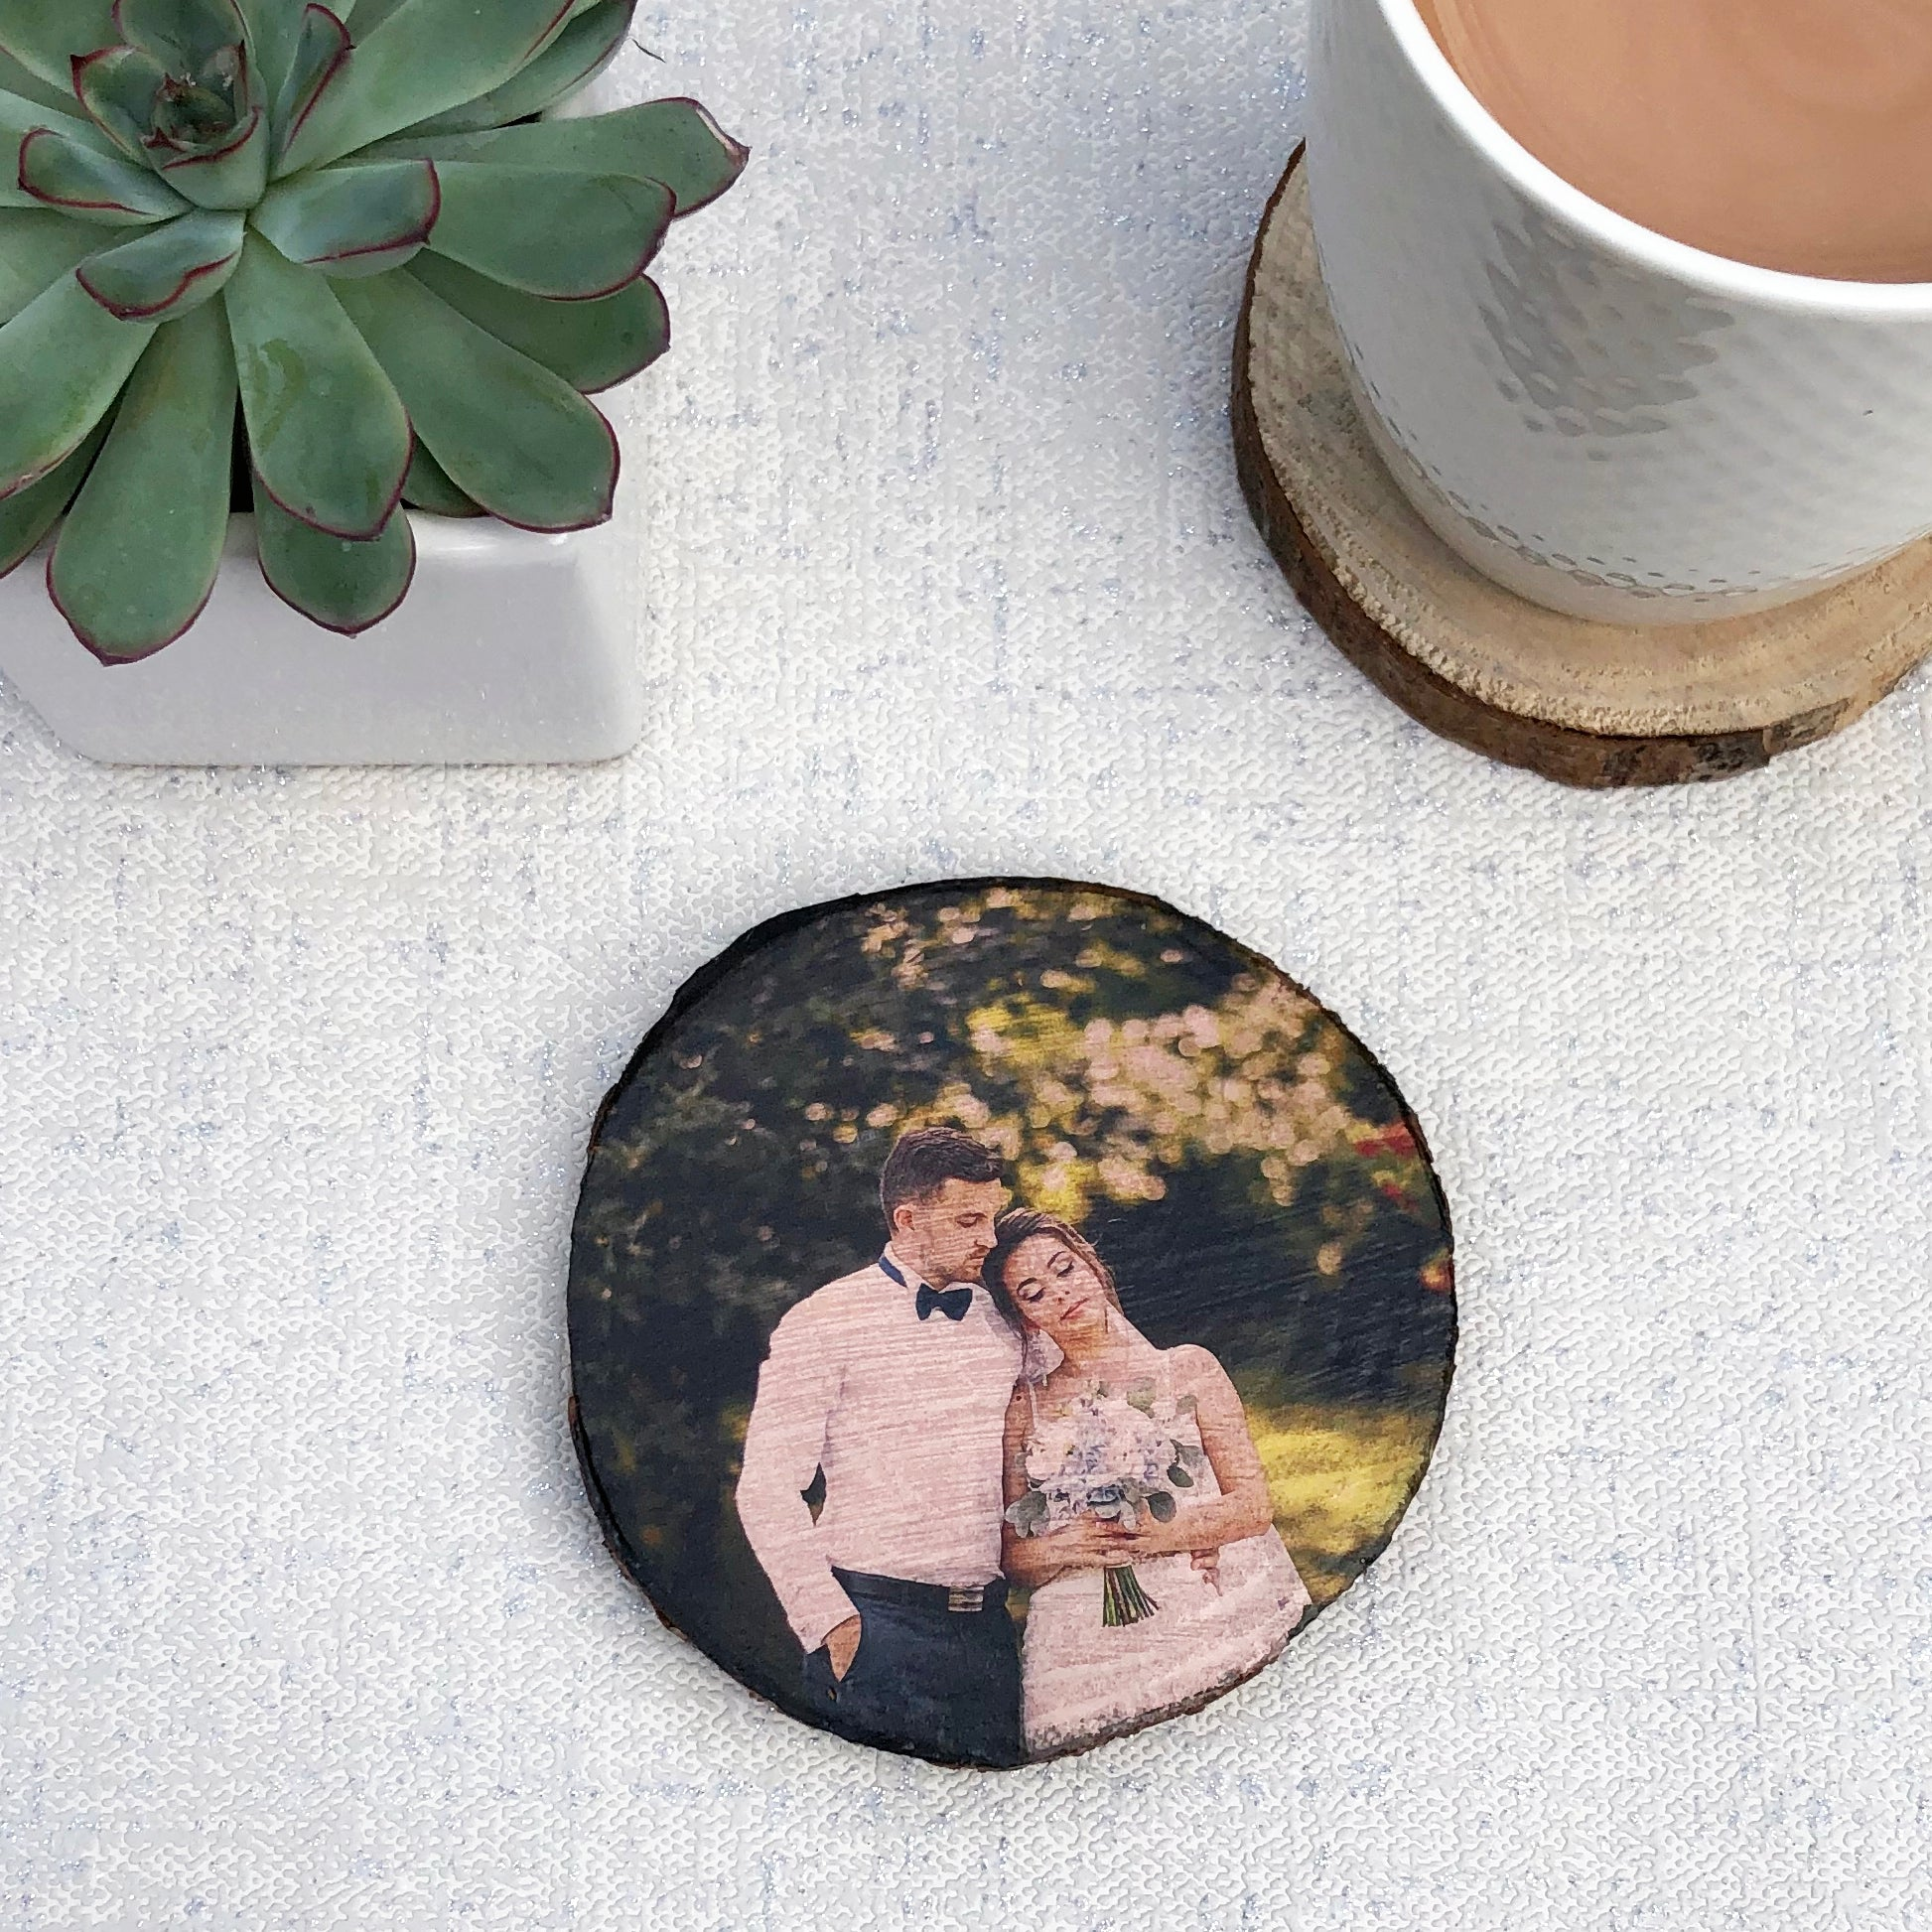 A wood slice photo coaster showing a bride and groom on their wedding day. A cup of tea on a plain coaster and a plant are also shown.